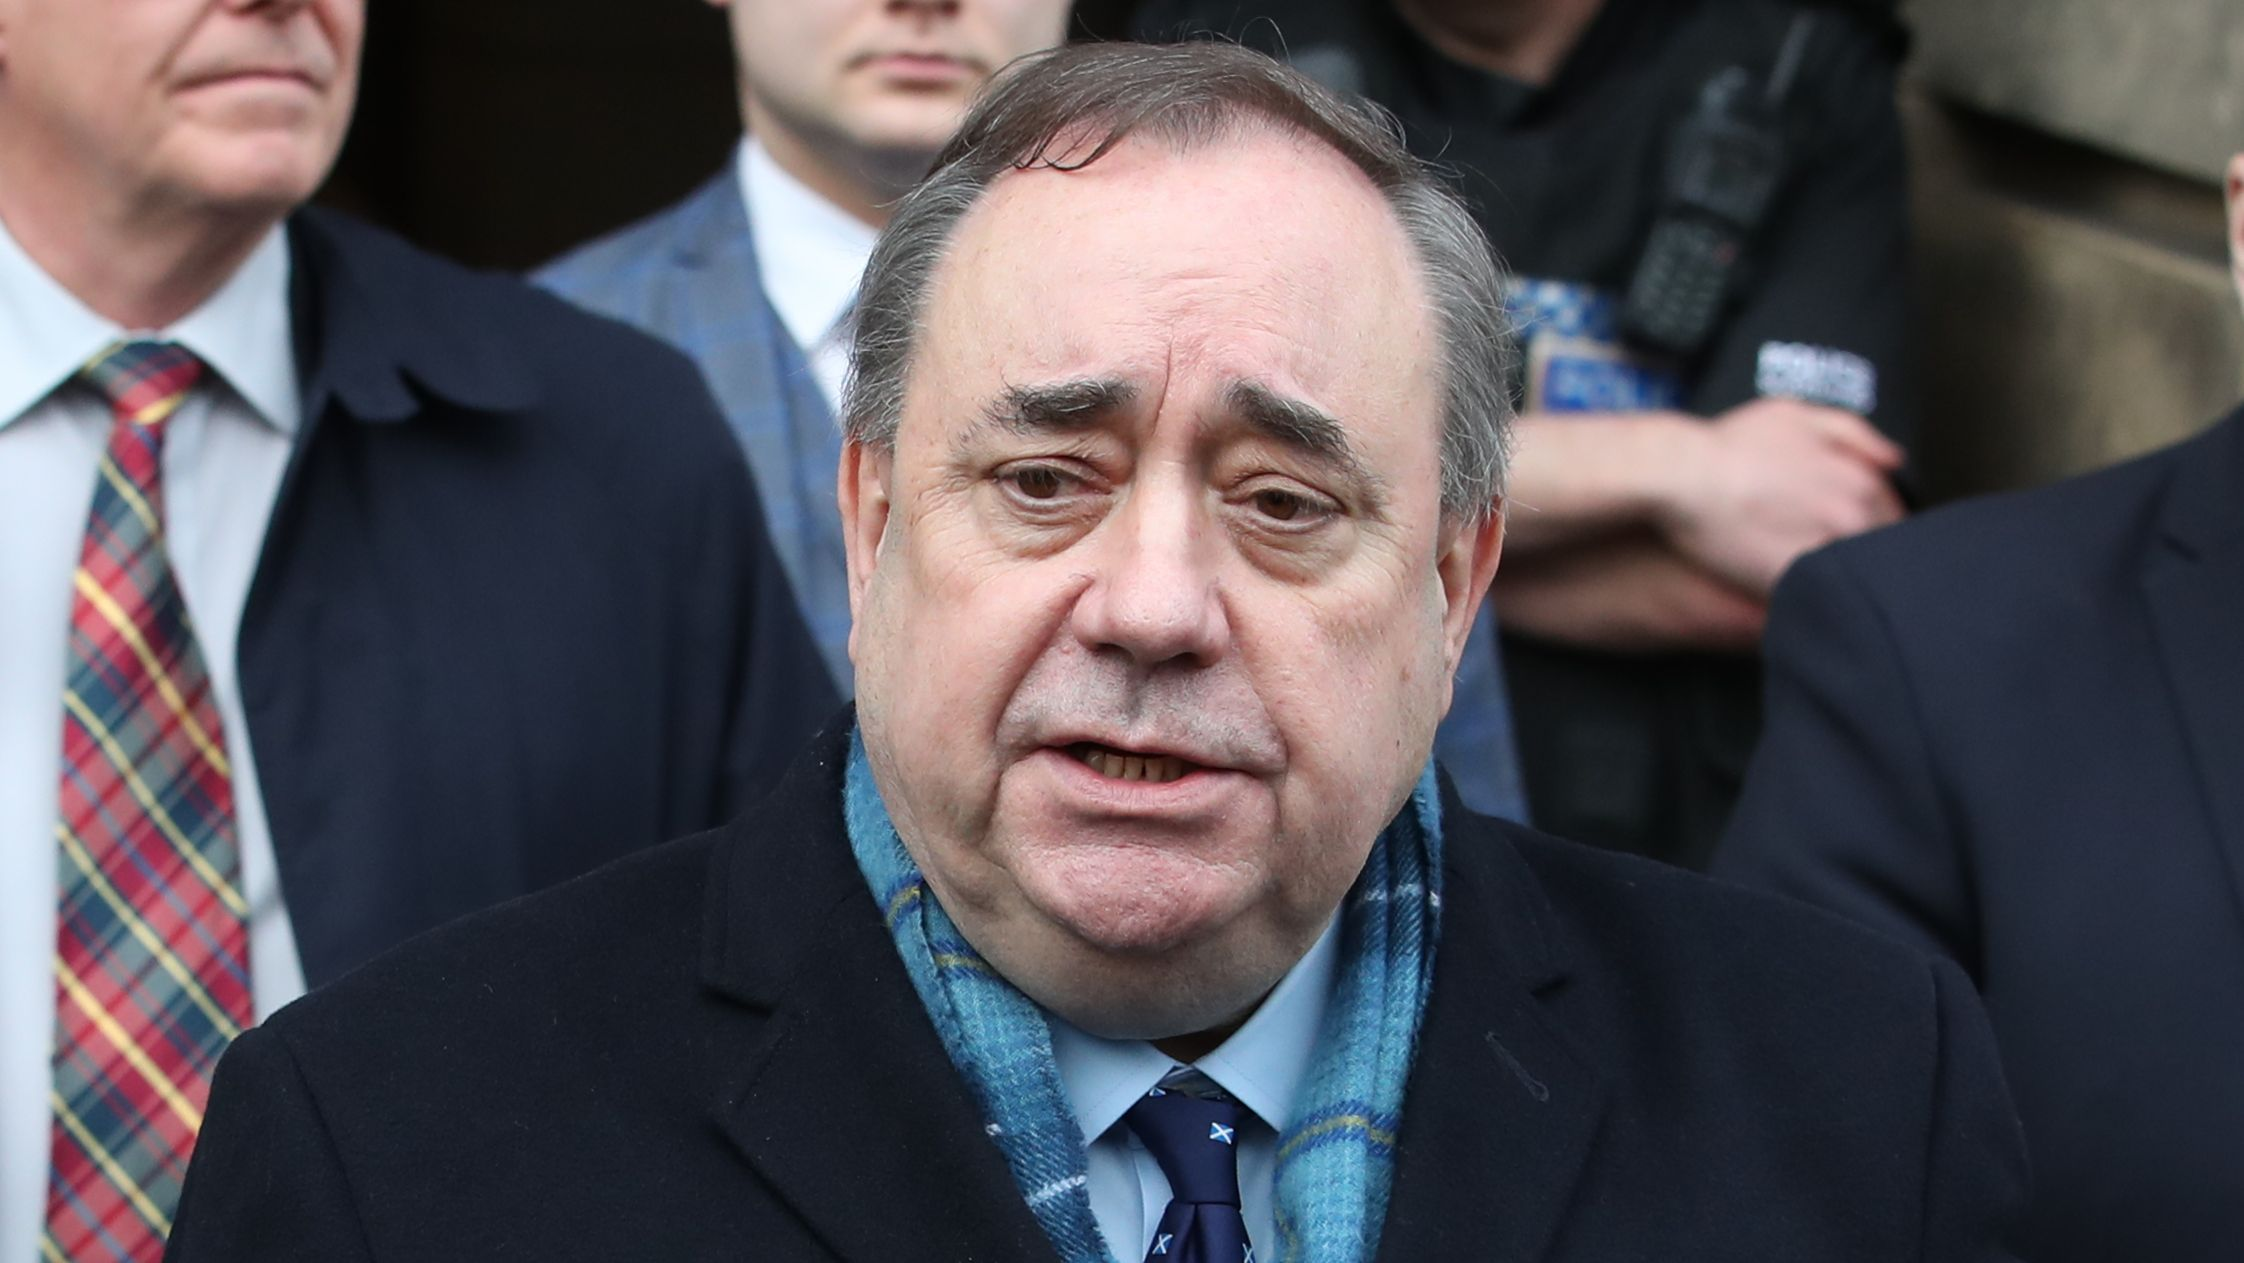 Scottish Government accused of 'incompetence' over Alex Salmond civil case timing